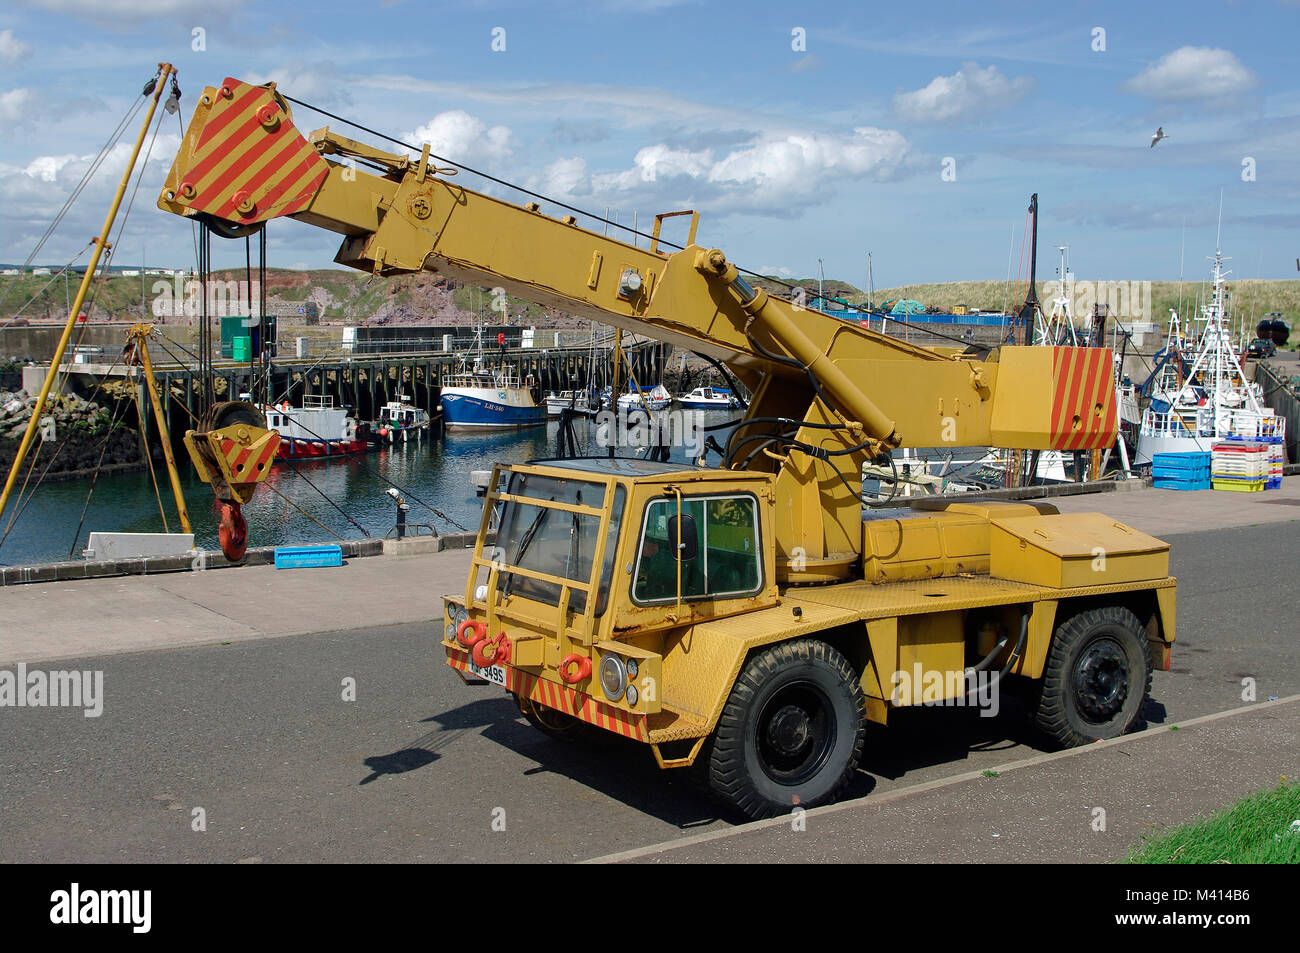 Coles Hydra Speedcrane, Eyemouth Harbour - Stock Image